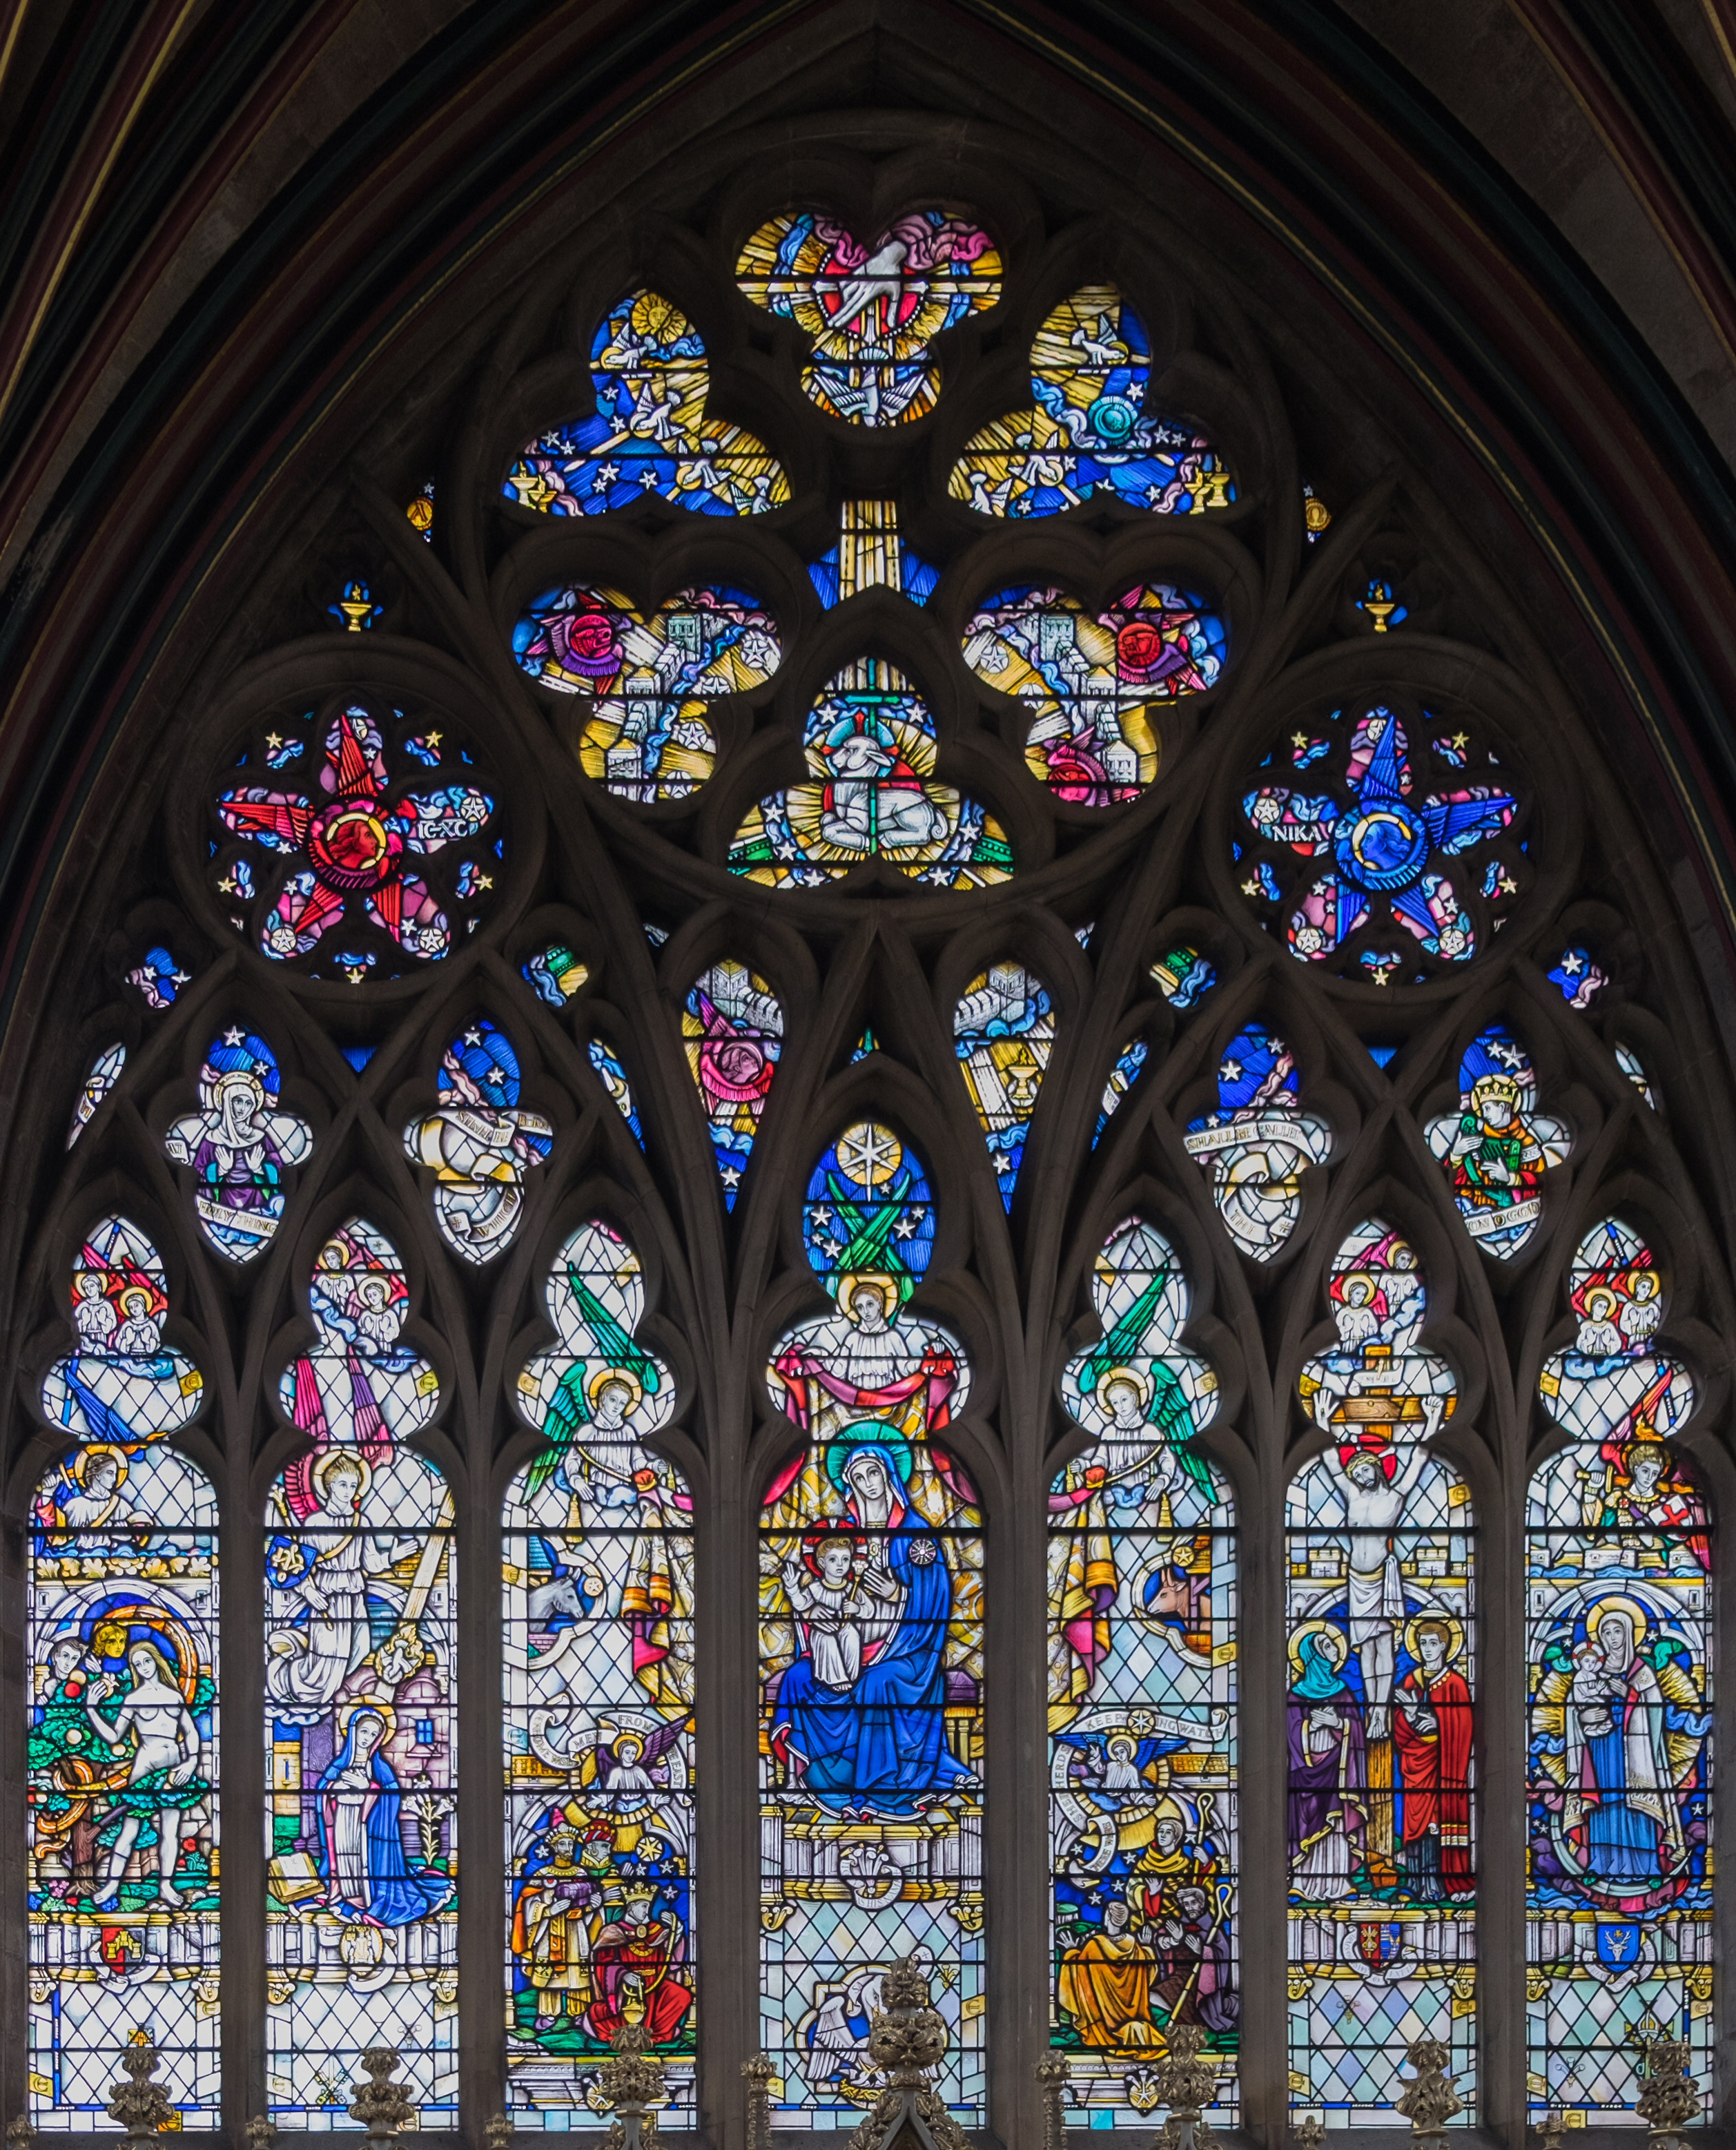 The Lady Chapel east window, containing 14th century glass